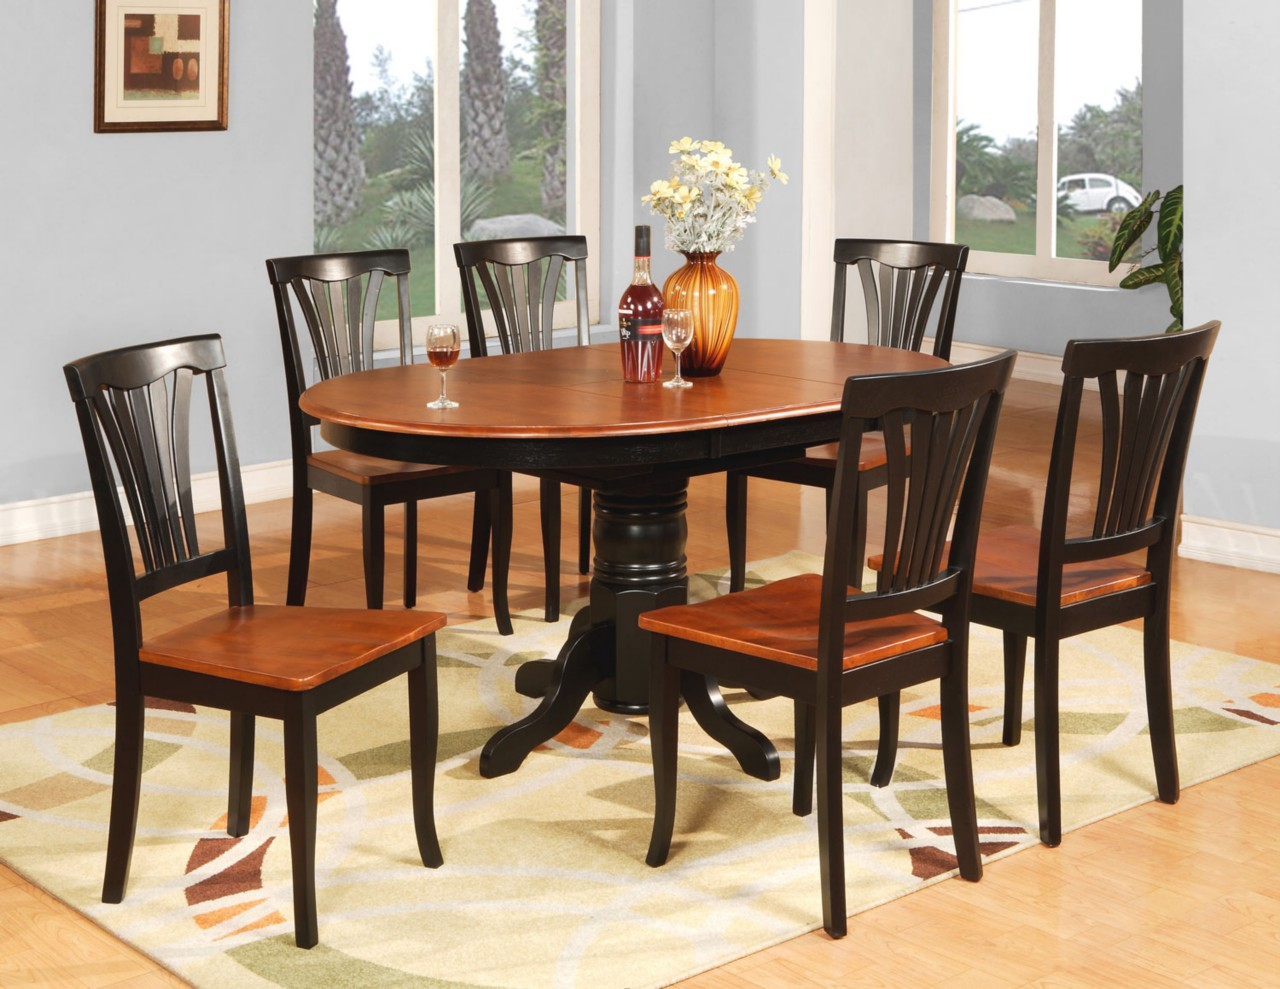 Oval Extension Dining Room Tables 7 Pc Oval Dinette Kitchen Dining Room Table Amp 6 Chairs Ebay